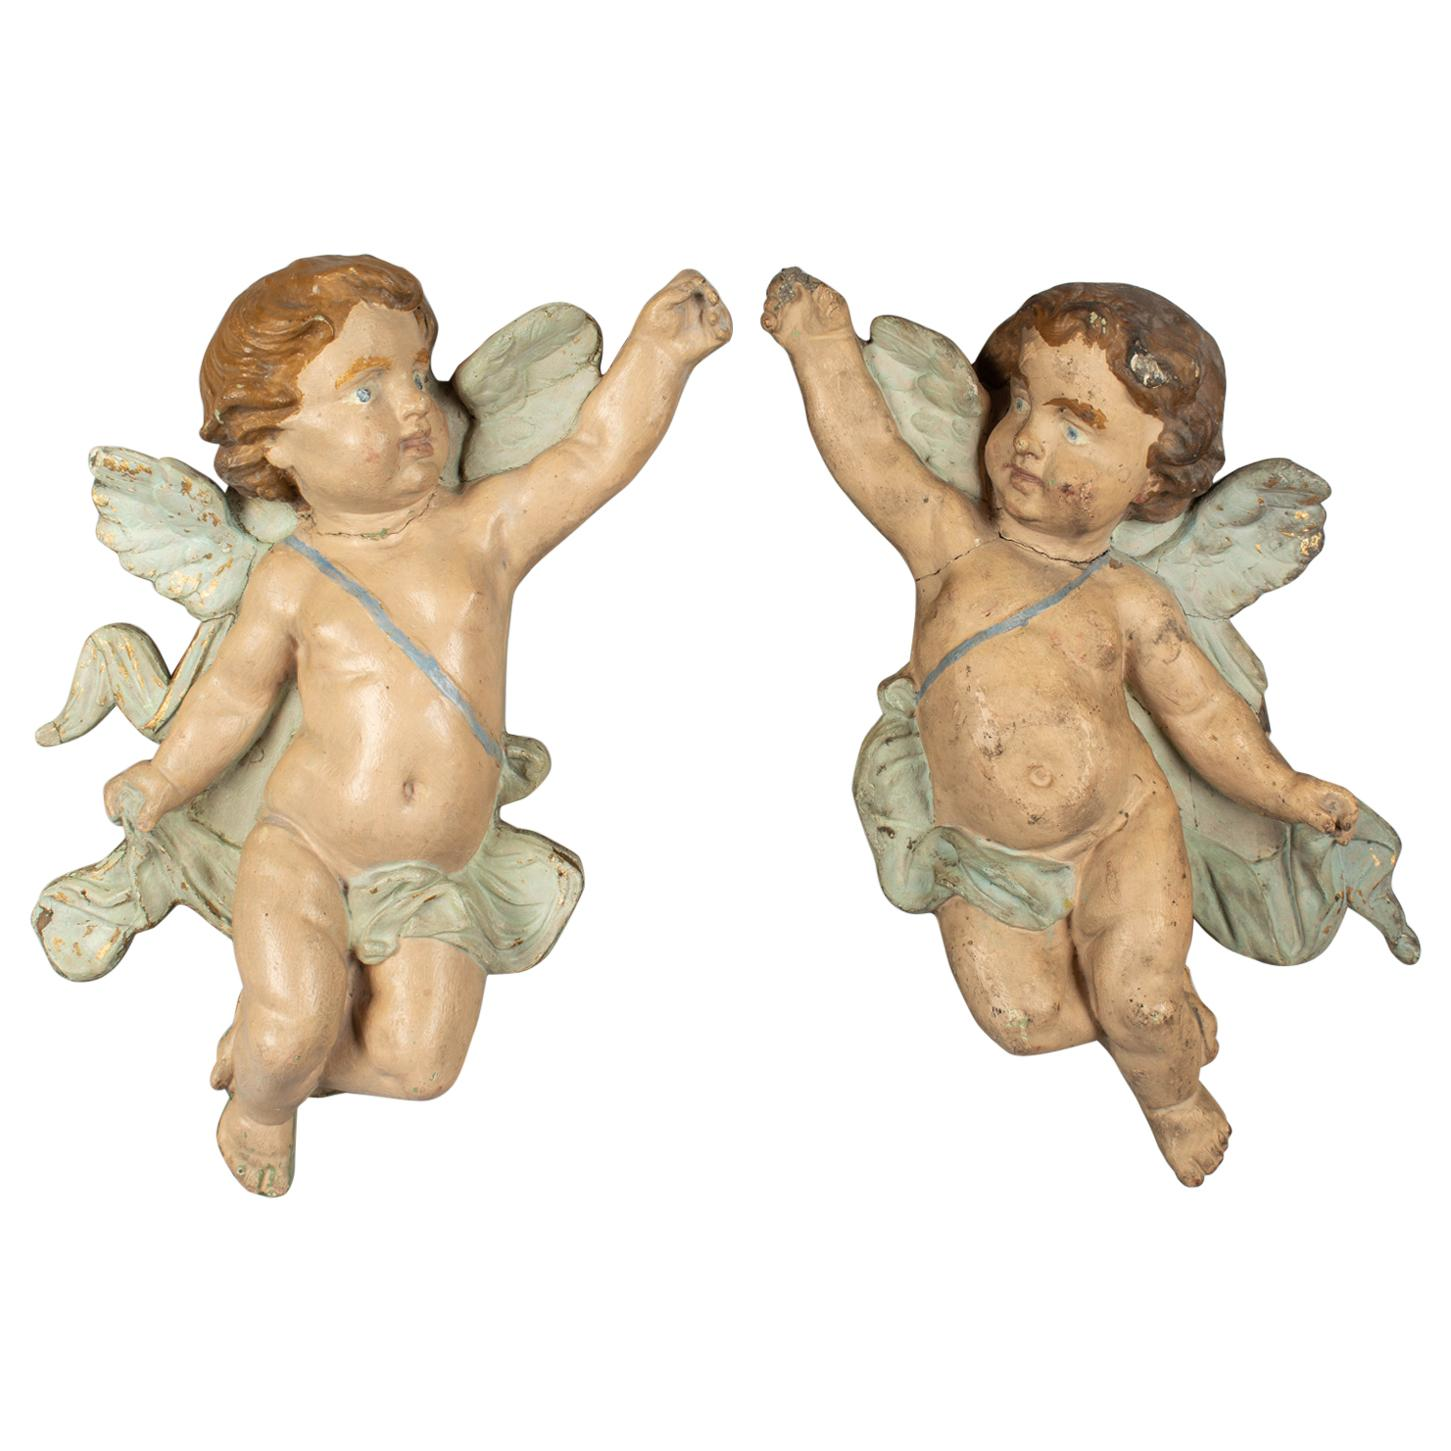 Pair of 19th Century Italian Winged Putti Wall Sculptures